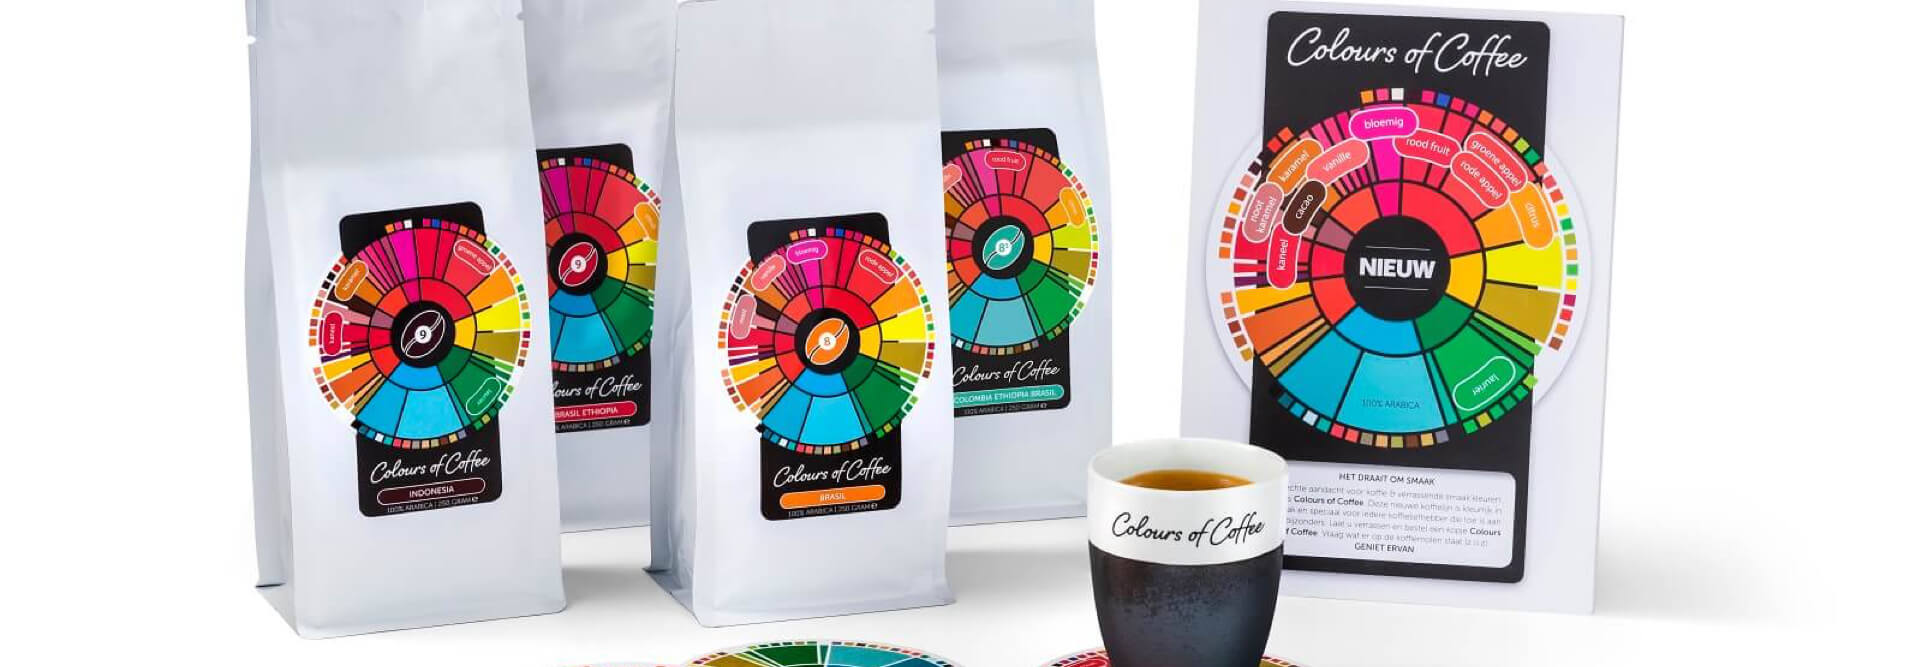 Colours of Coffee compilatie header.jpg